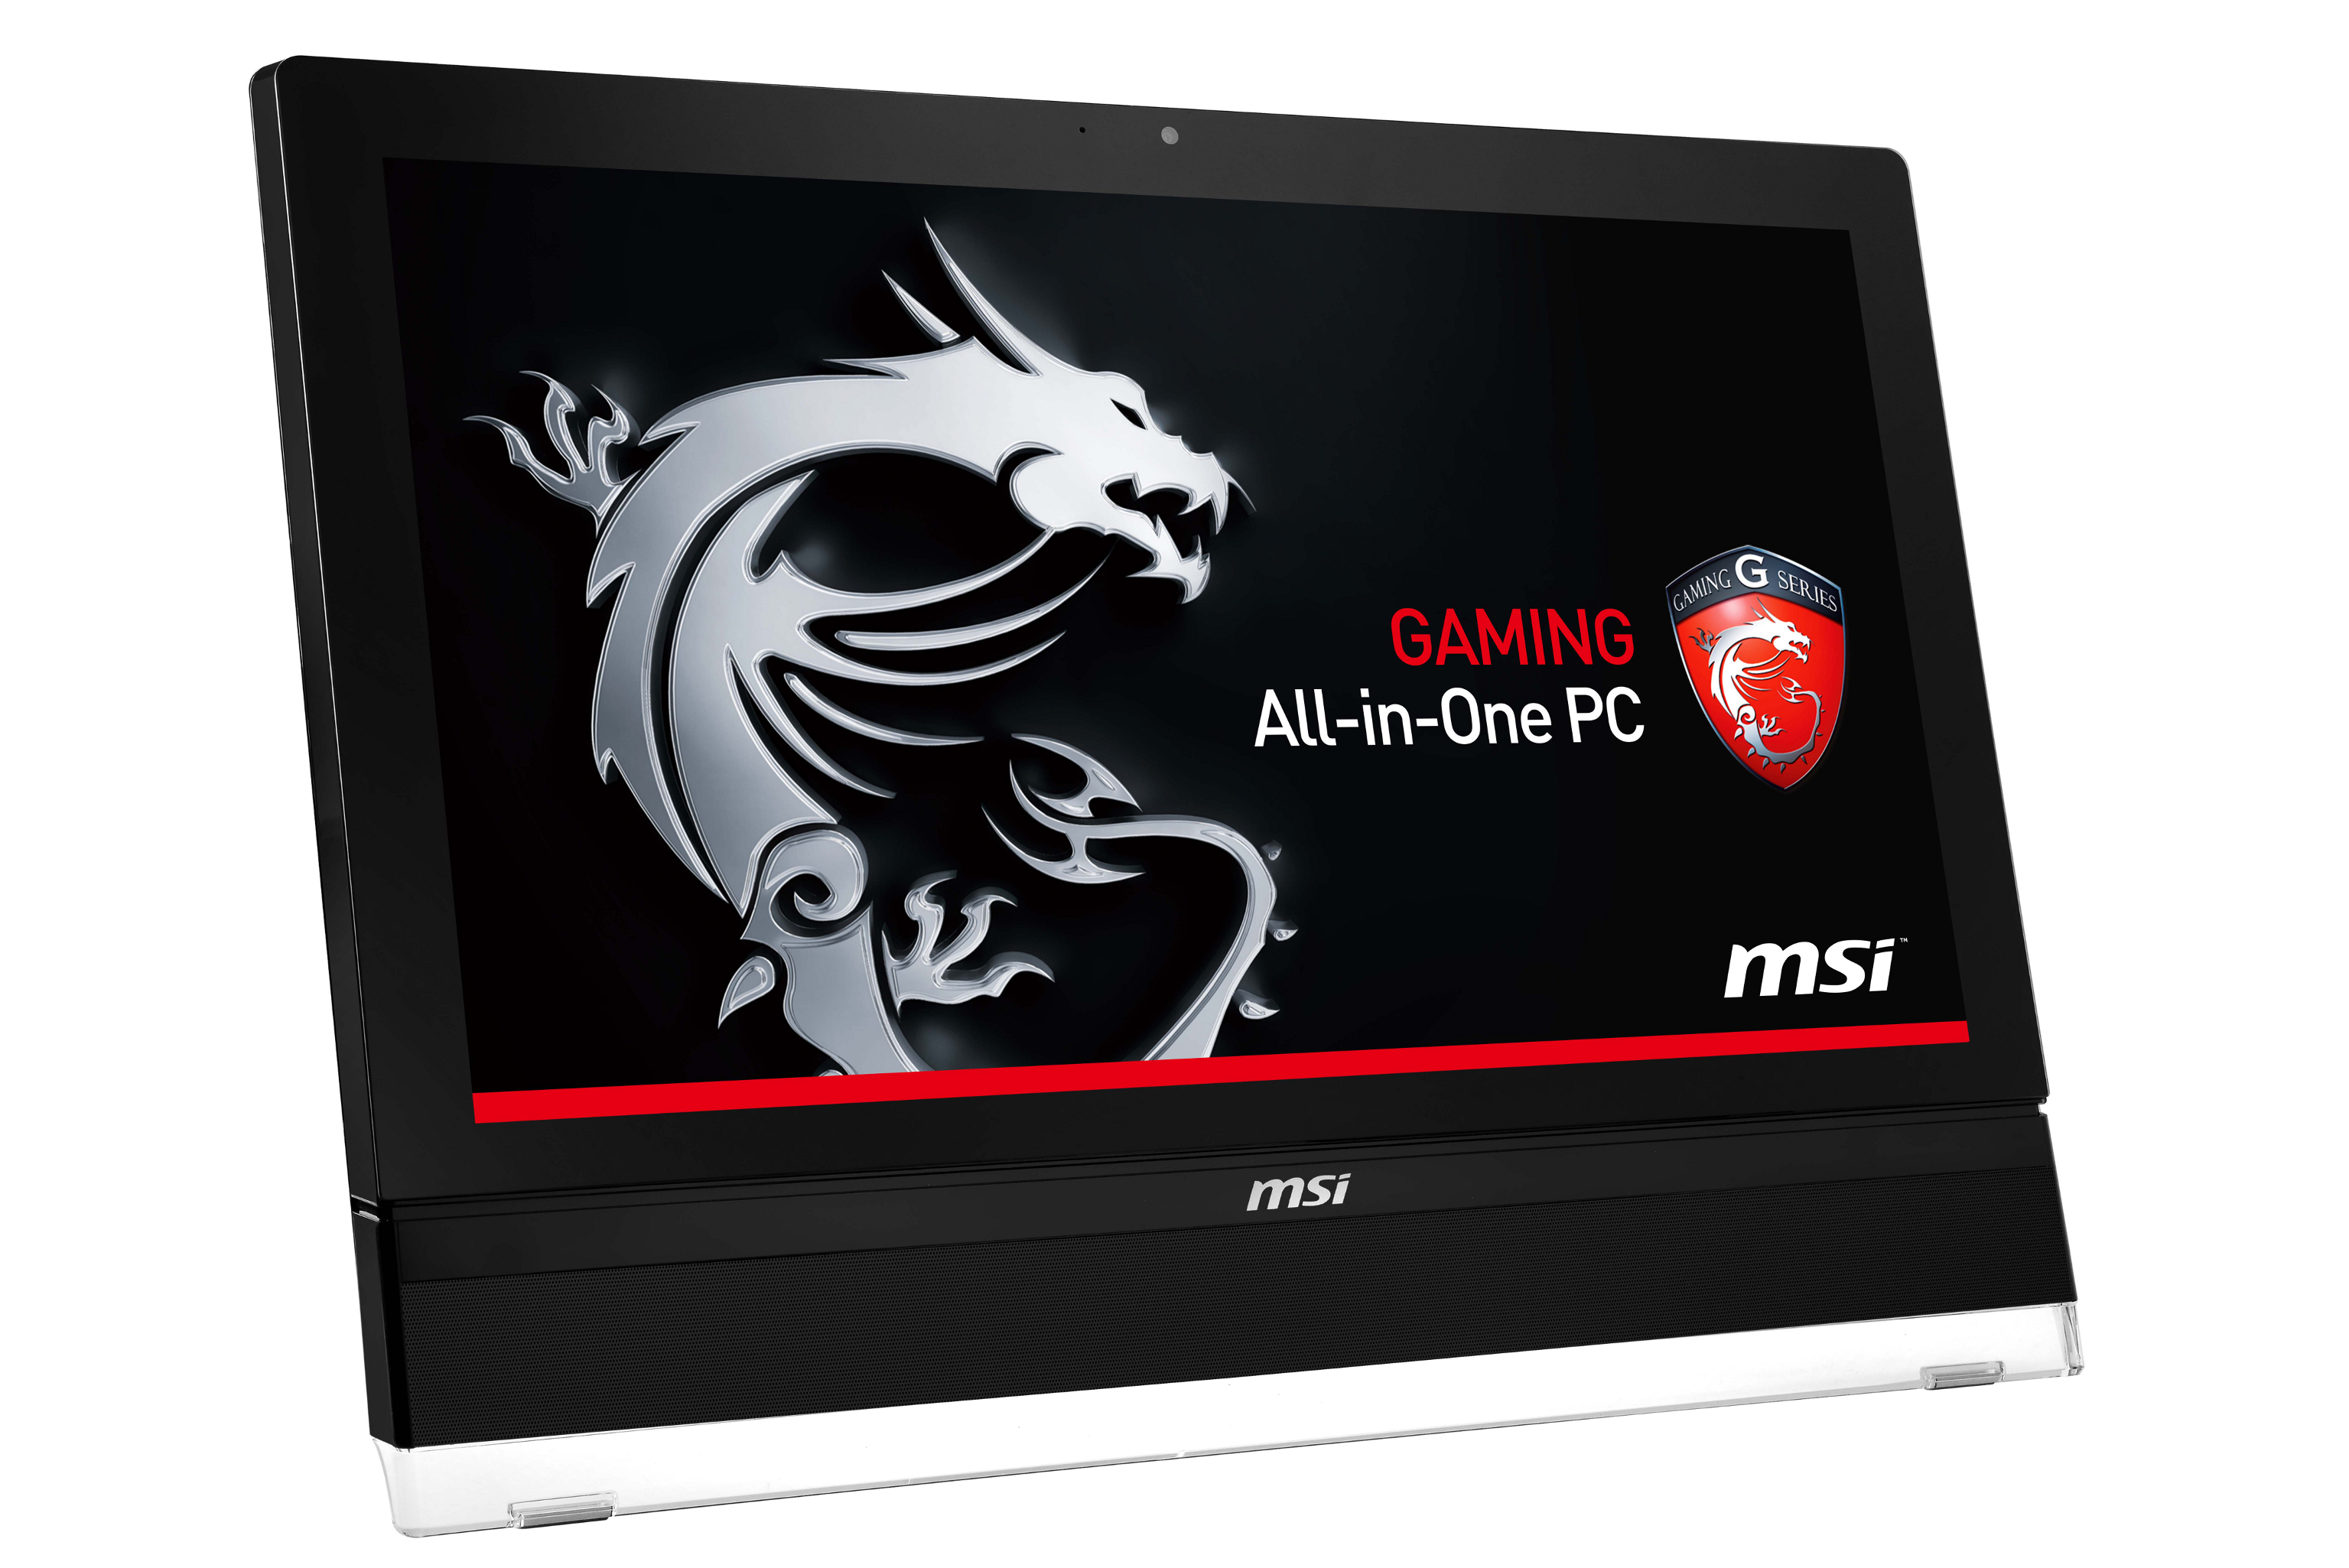 MSI: gaminowy All-in-One